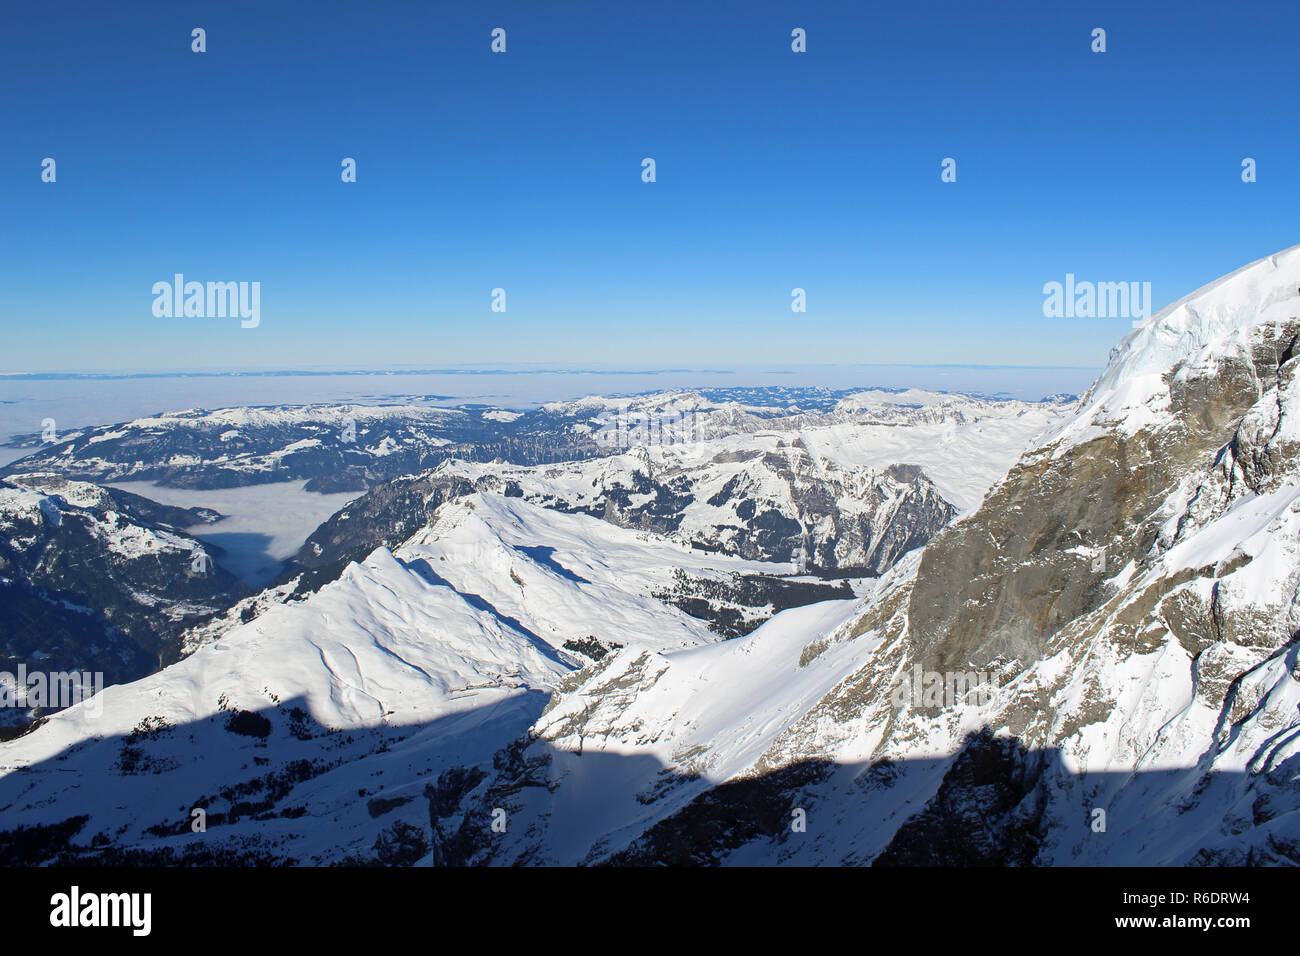 View from Jungfraujoch, Switzerland towards Wengen. Highest railway station in Europe 3,466 m (11,371 ft). Cloudless Sunny Winter day. Stock Photo